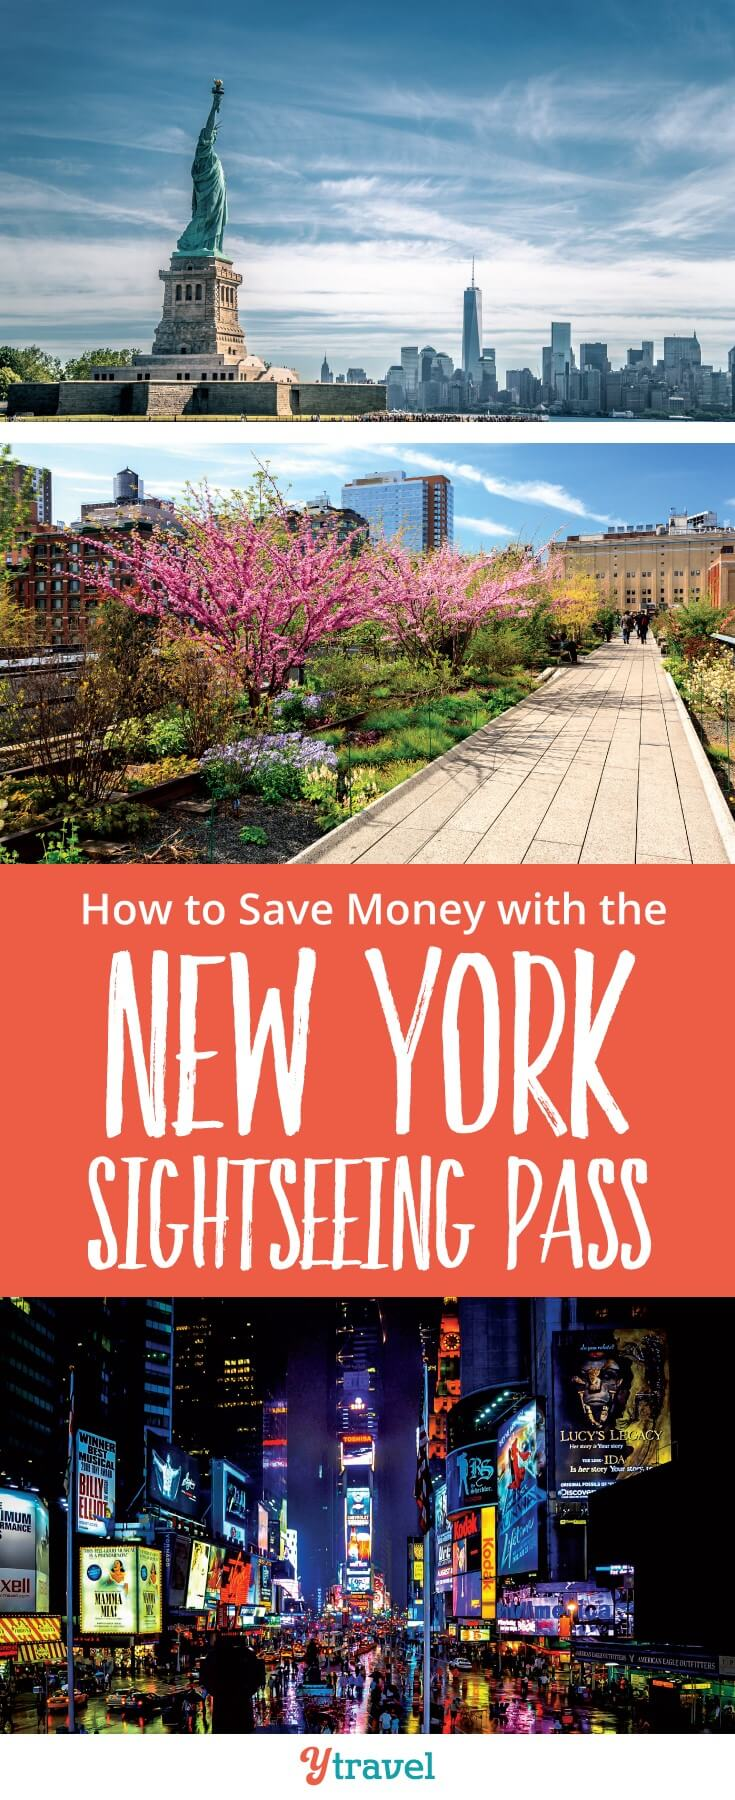 How to save money in New York with the New York Sightseeing pass. We share if the New York attraction passes are worth it and how to get the most out of them when you visit New York City #NYC #newYork #NewYorkTravelTips #traveltips